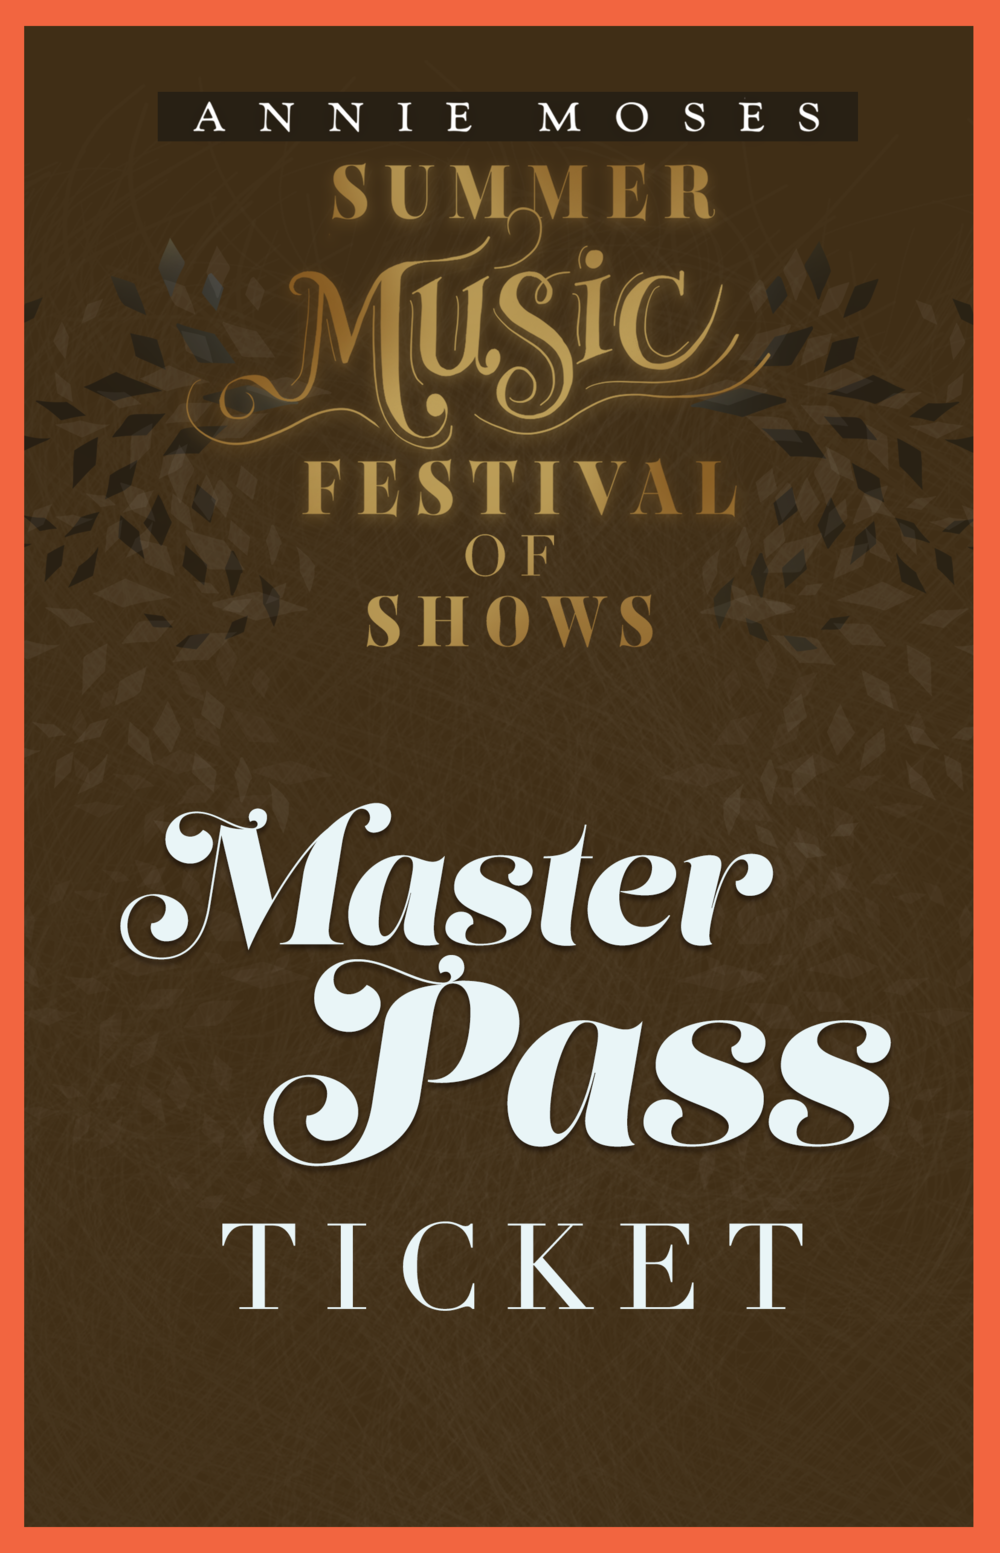 Annie Moses Summer Music Festical Master Pass.png